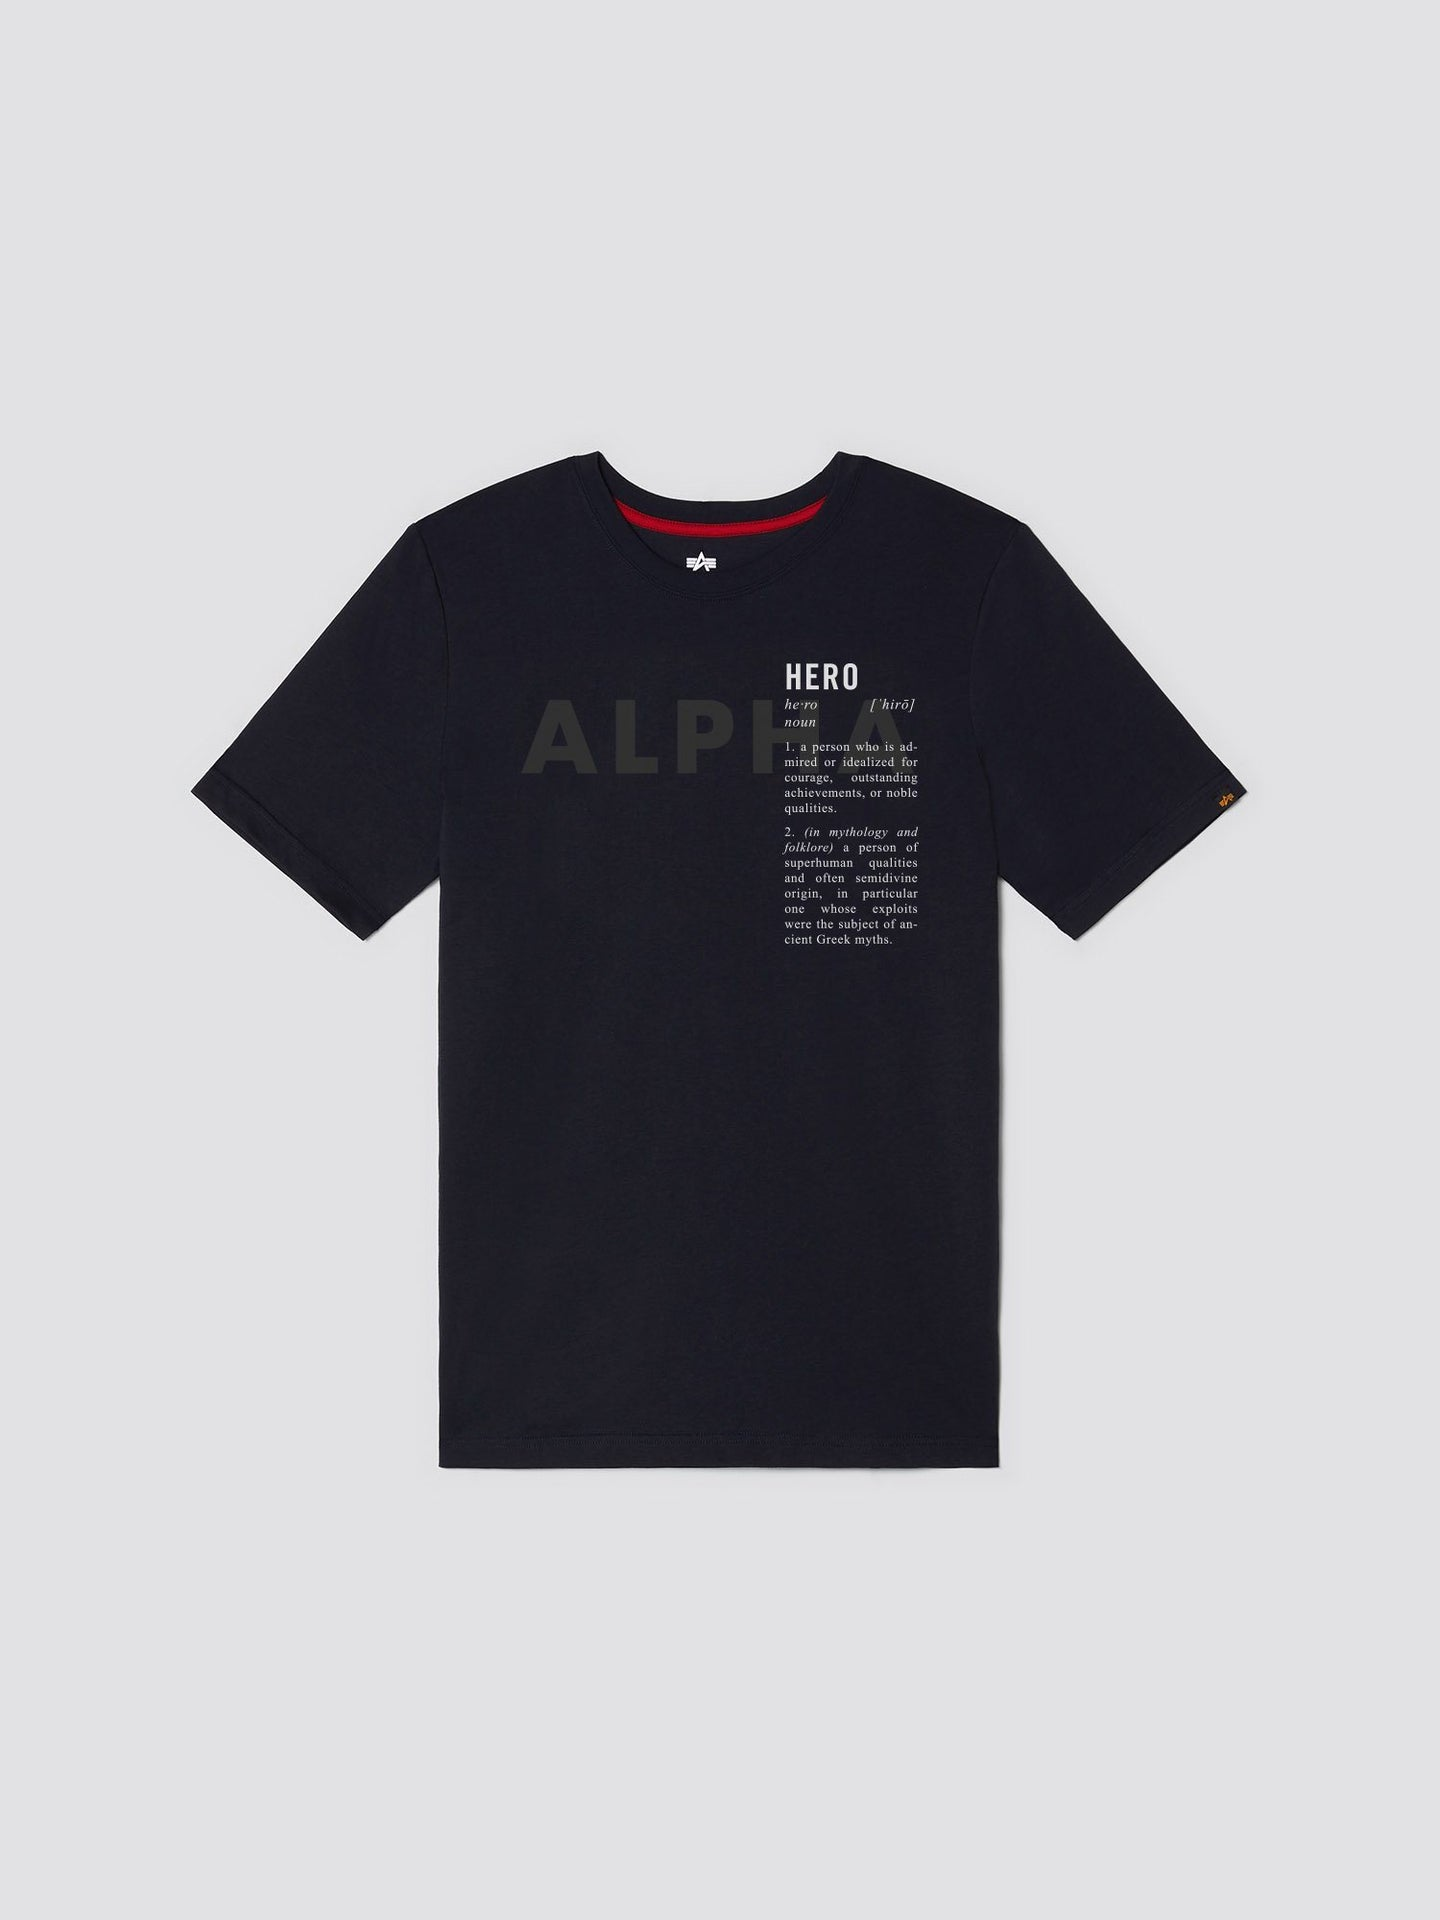 EXCLUSIVE HERO TEE TOP Alpha Industries, Inc. REPLICA BLUE 2XL